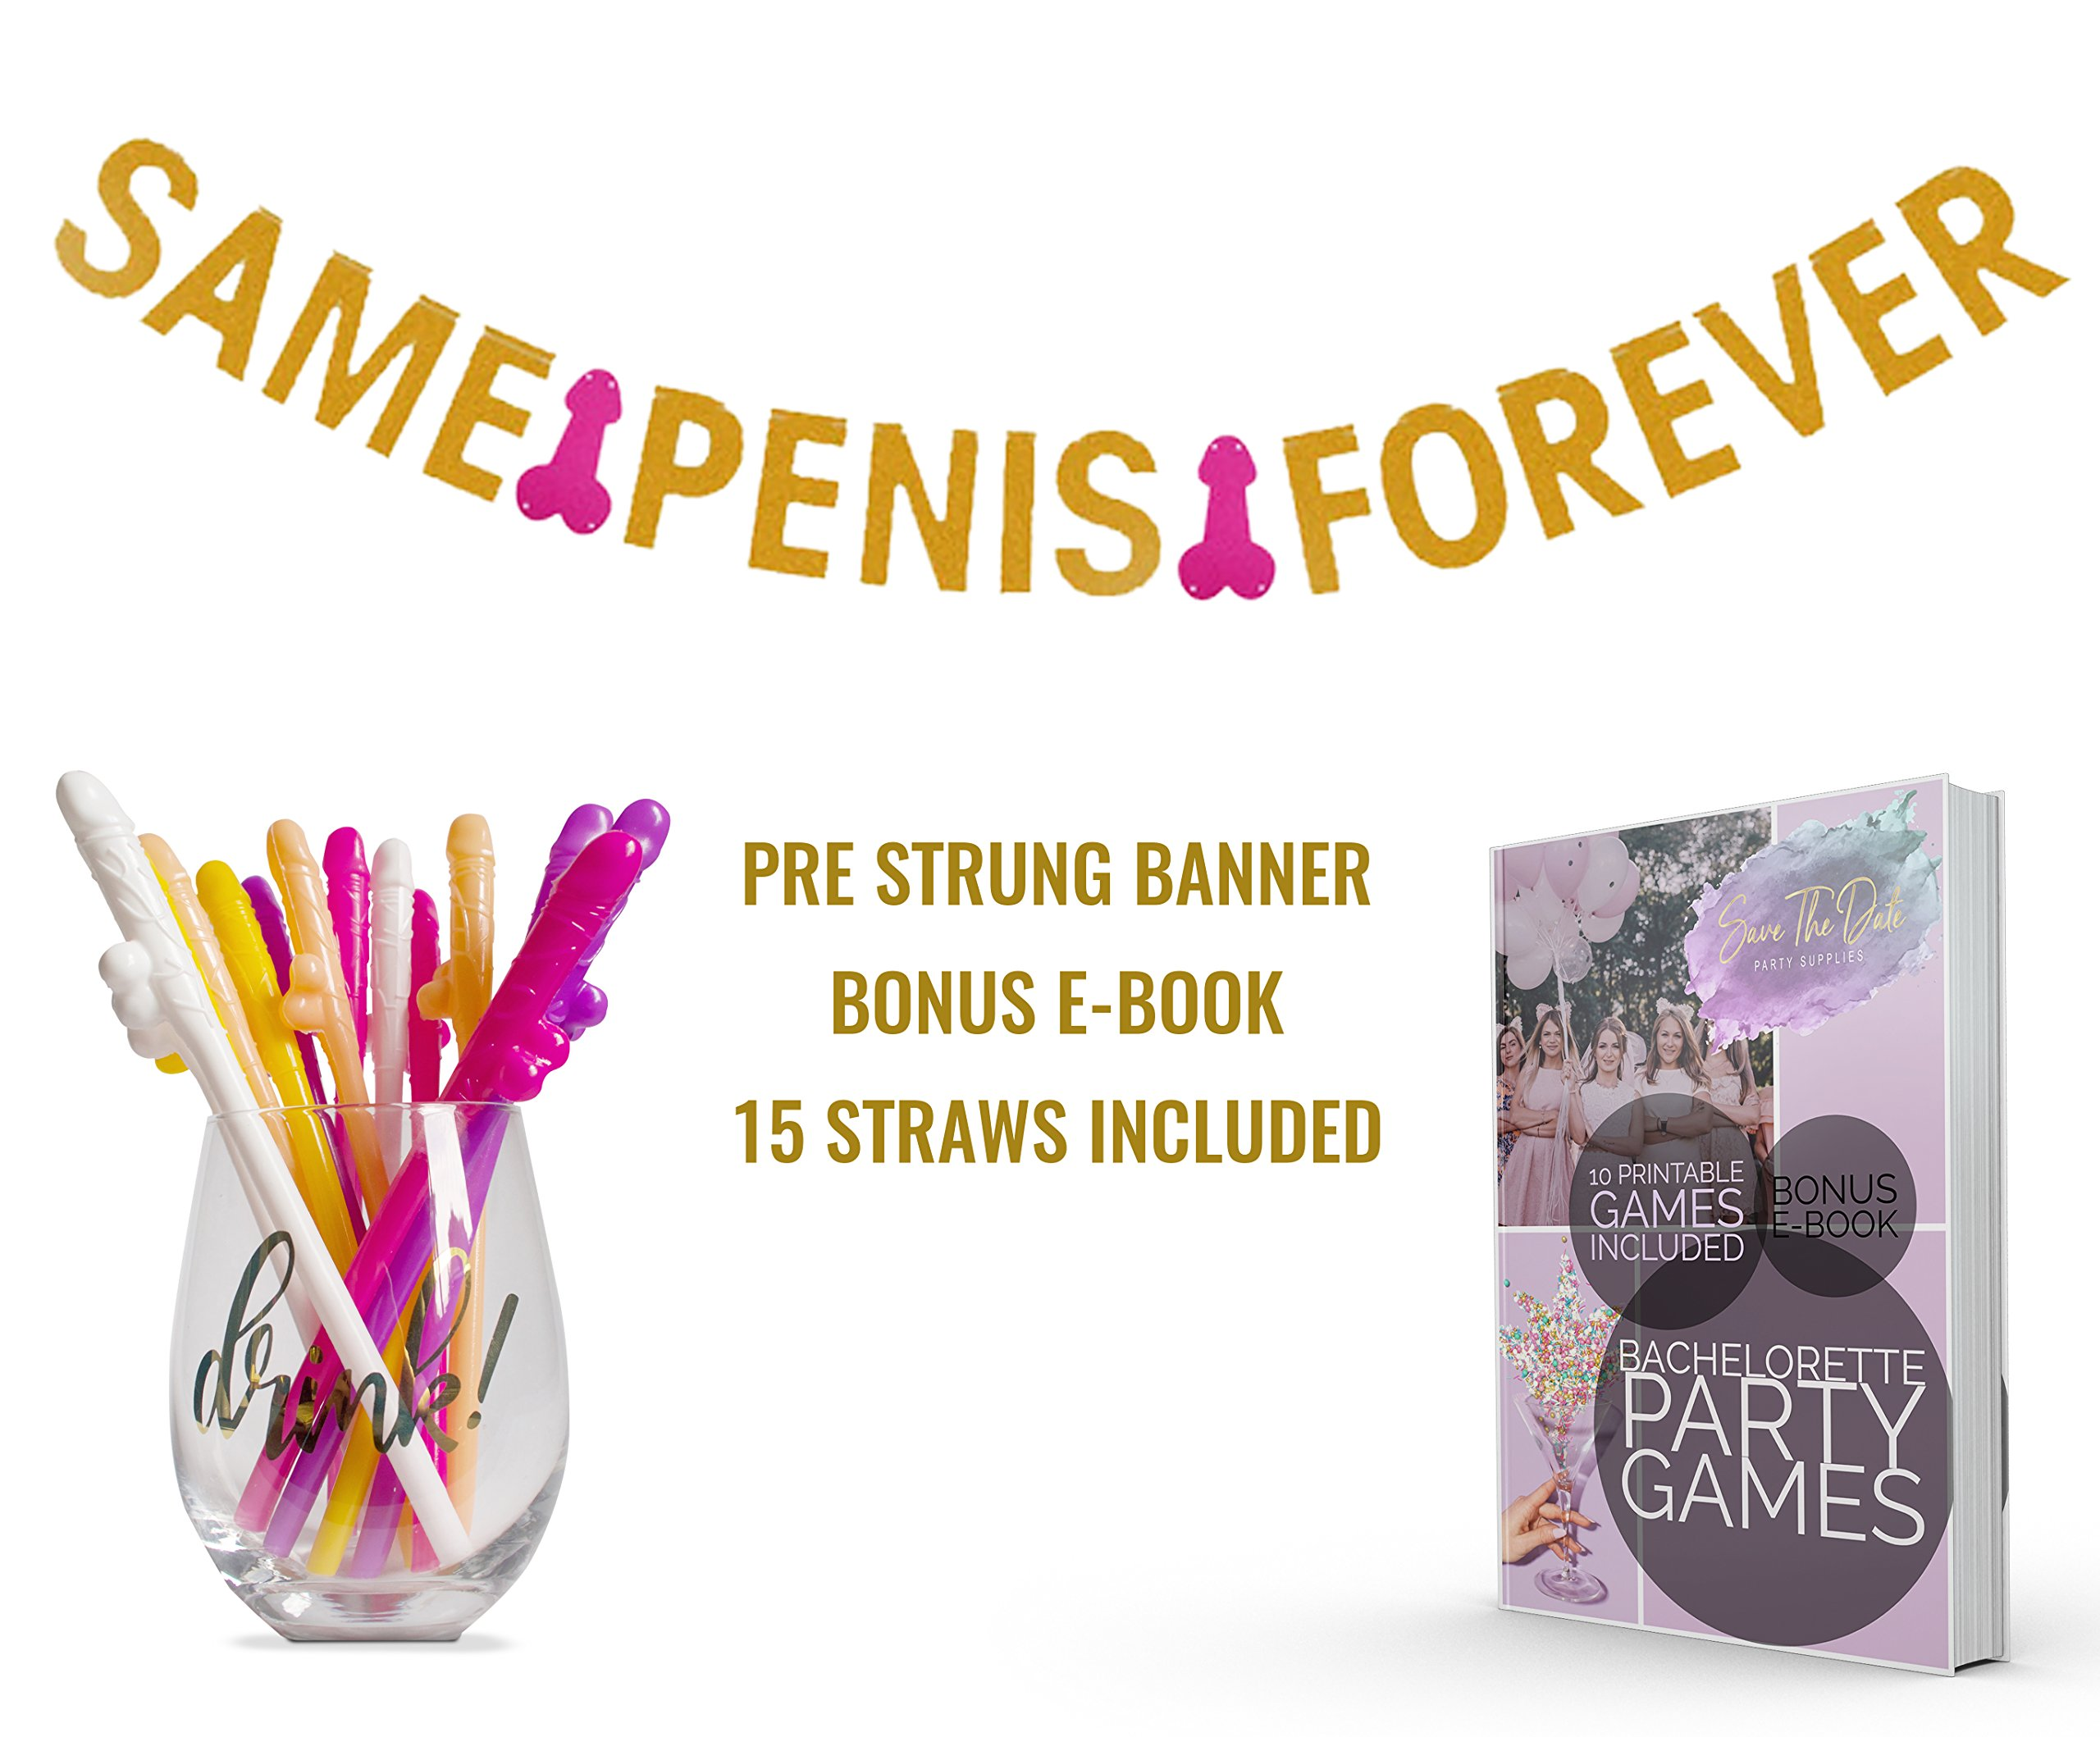 Bachelorette Party- Same Pen*is Forever Banner and Pen*is Straws with Bonus Save The Date E-Book - Including 10 Printable Bachelorette Party Games